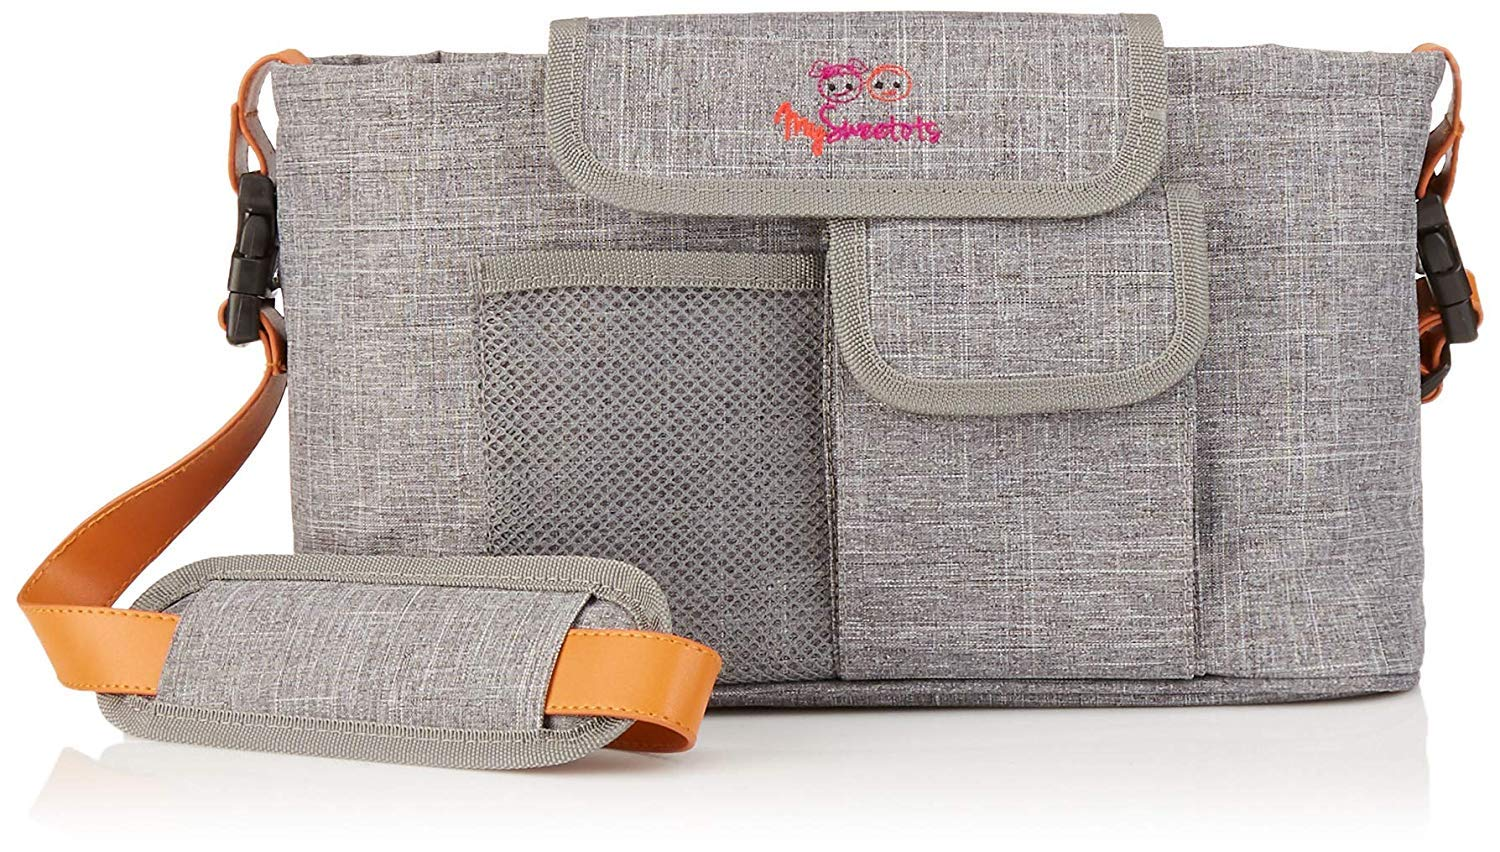 MySweetots All-in-1 Baby Stroller Organizer | Large Cup Holders, Plenty of Pockets, Key Holder, Wipes Pocket, Bonus Leather Strap | Multipurpose Baby Bag for Busy Parents | Free Diaper Changing Pad!!